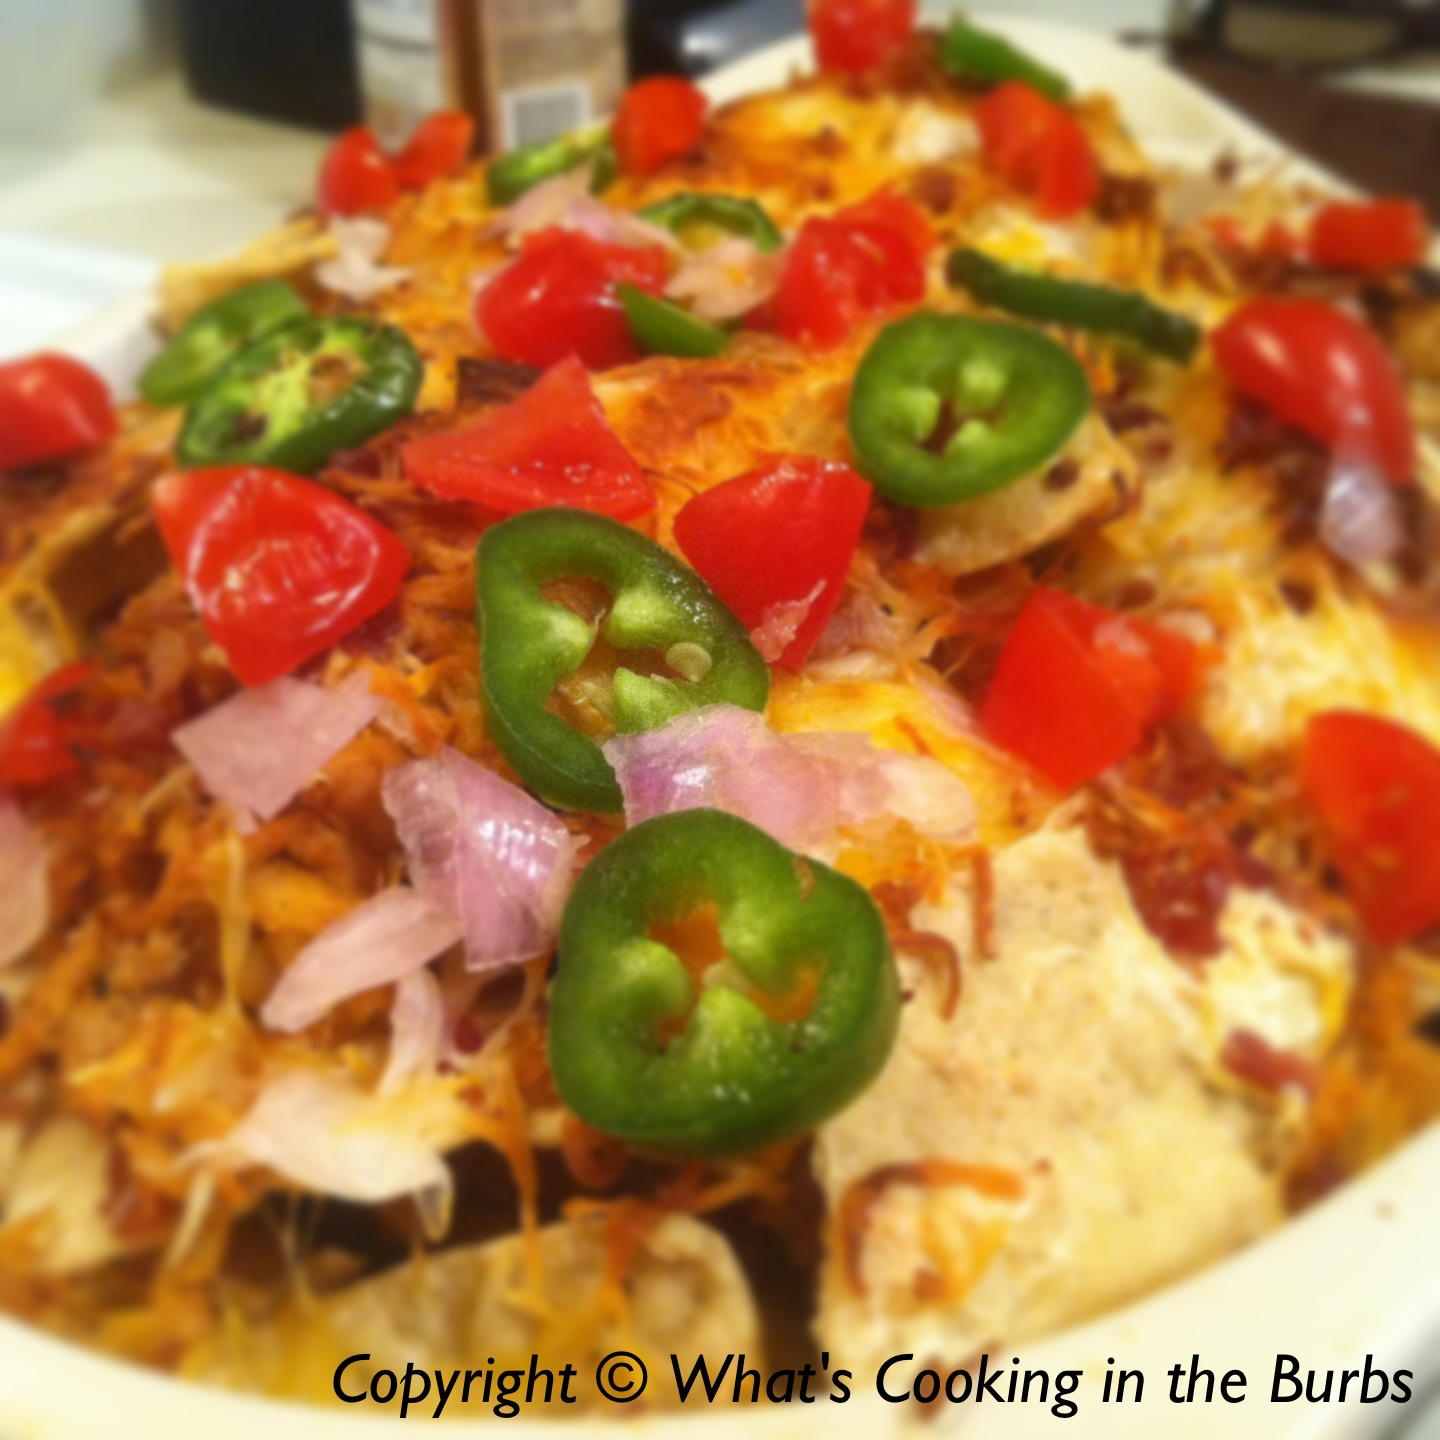 What's Cooking in the Burbs: Loaded BBQ Chicken Nachos